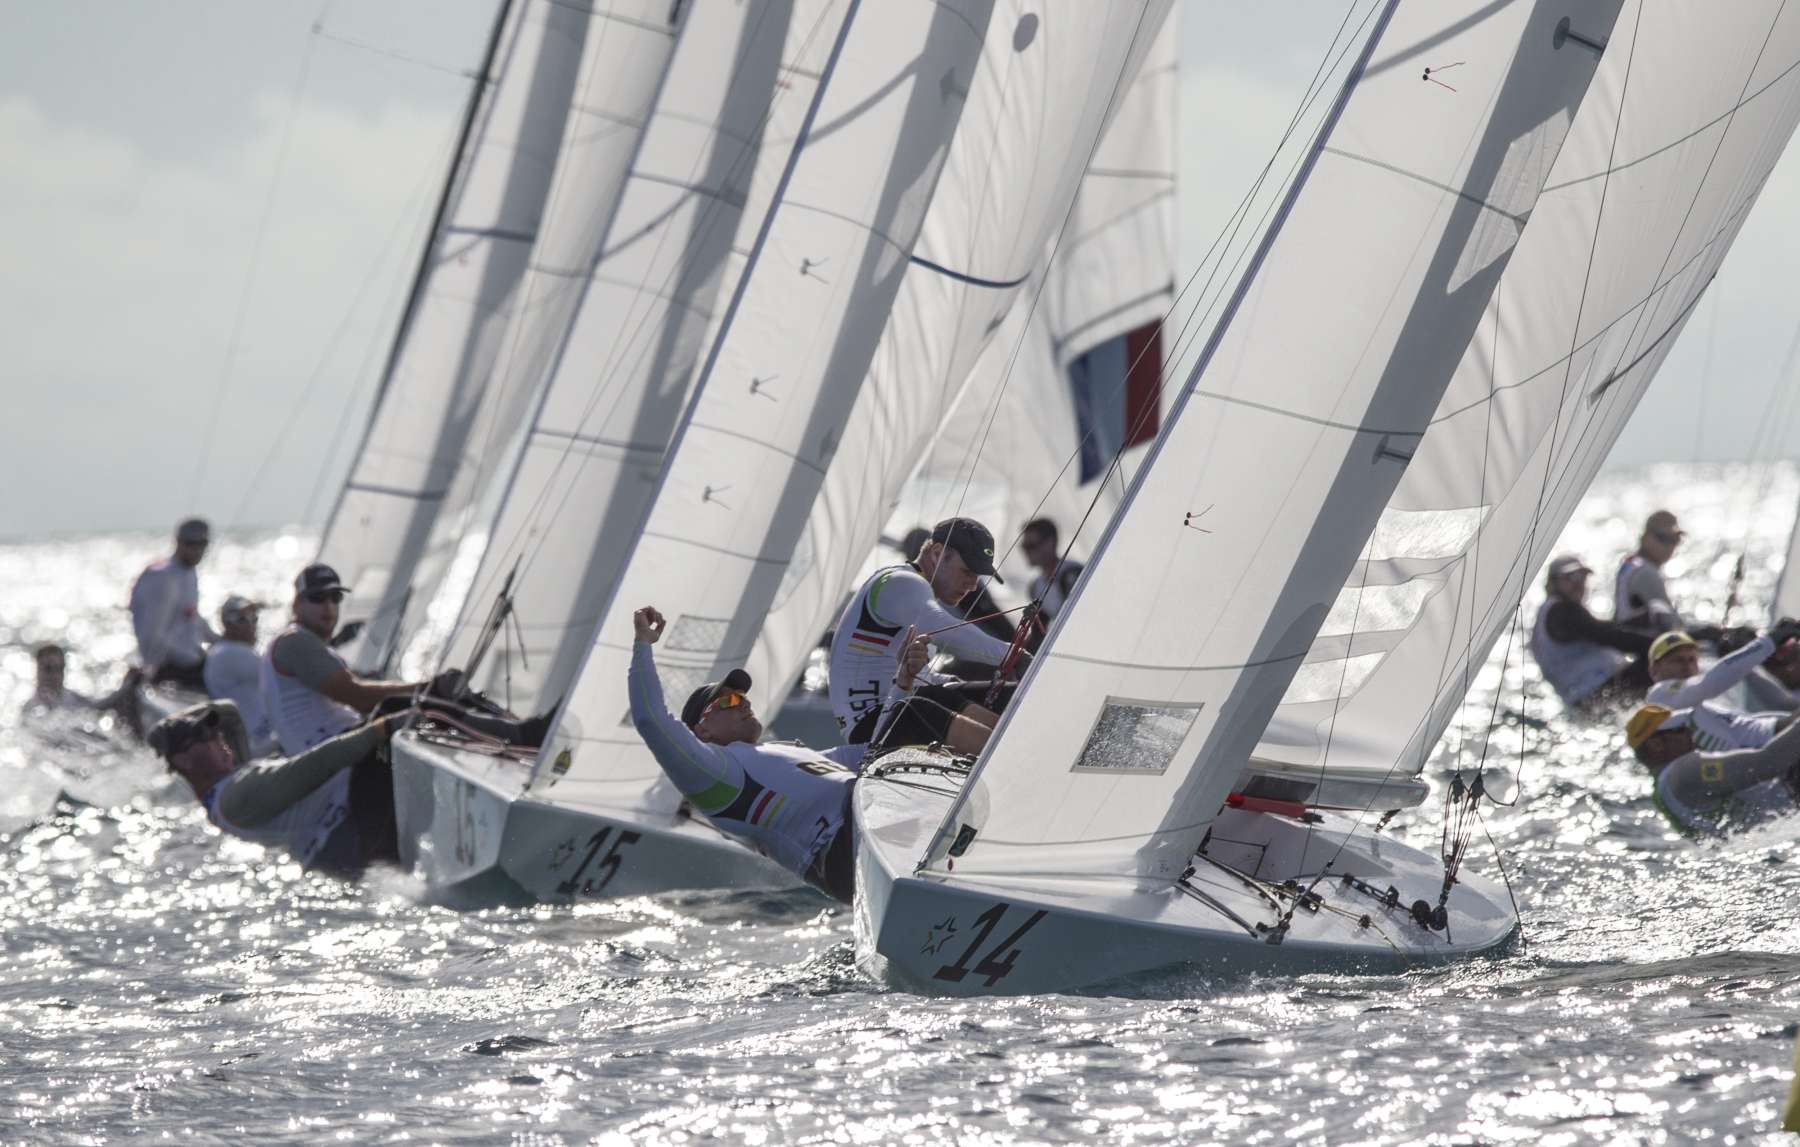 Trailer for Sporting Season 2019 online - NEWS - Yacht Club Costa Smeralda